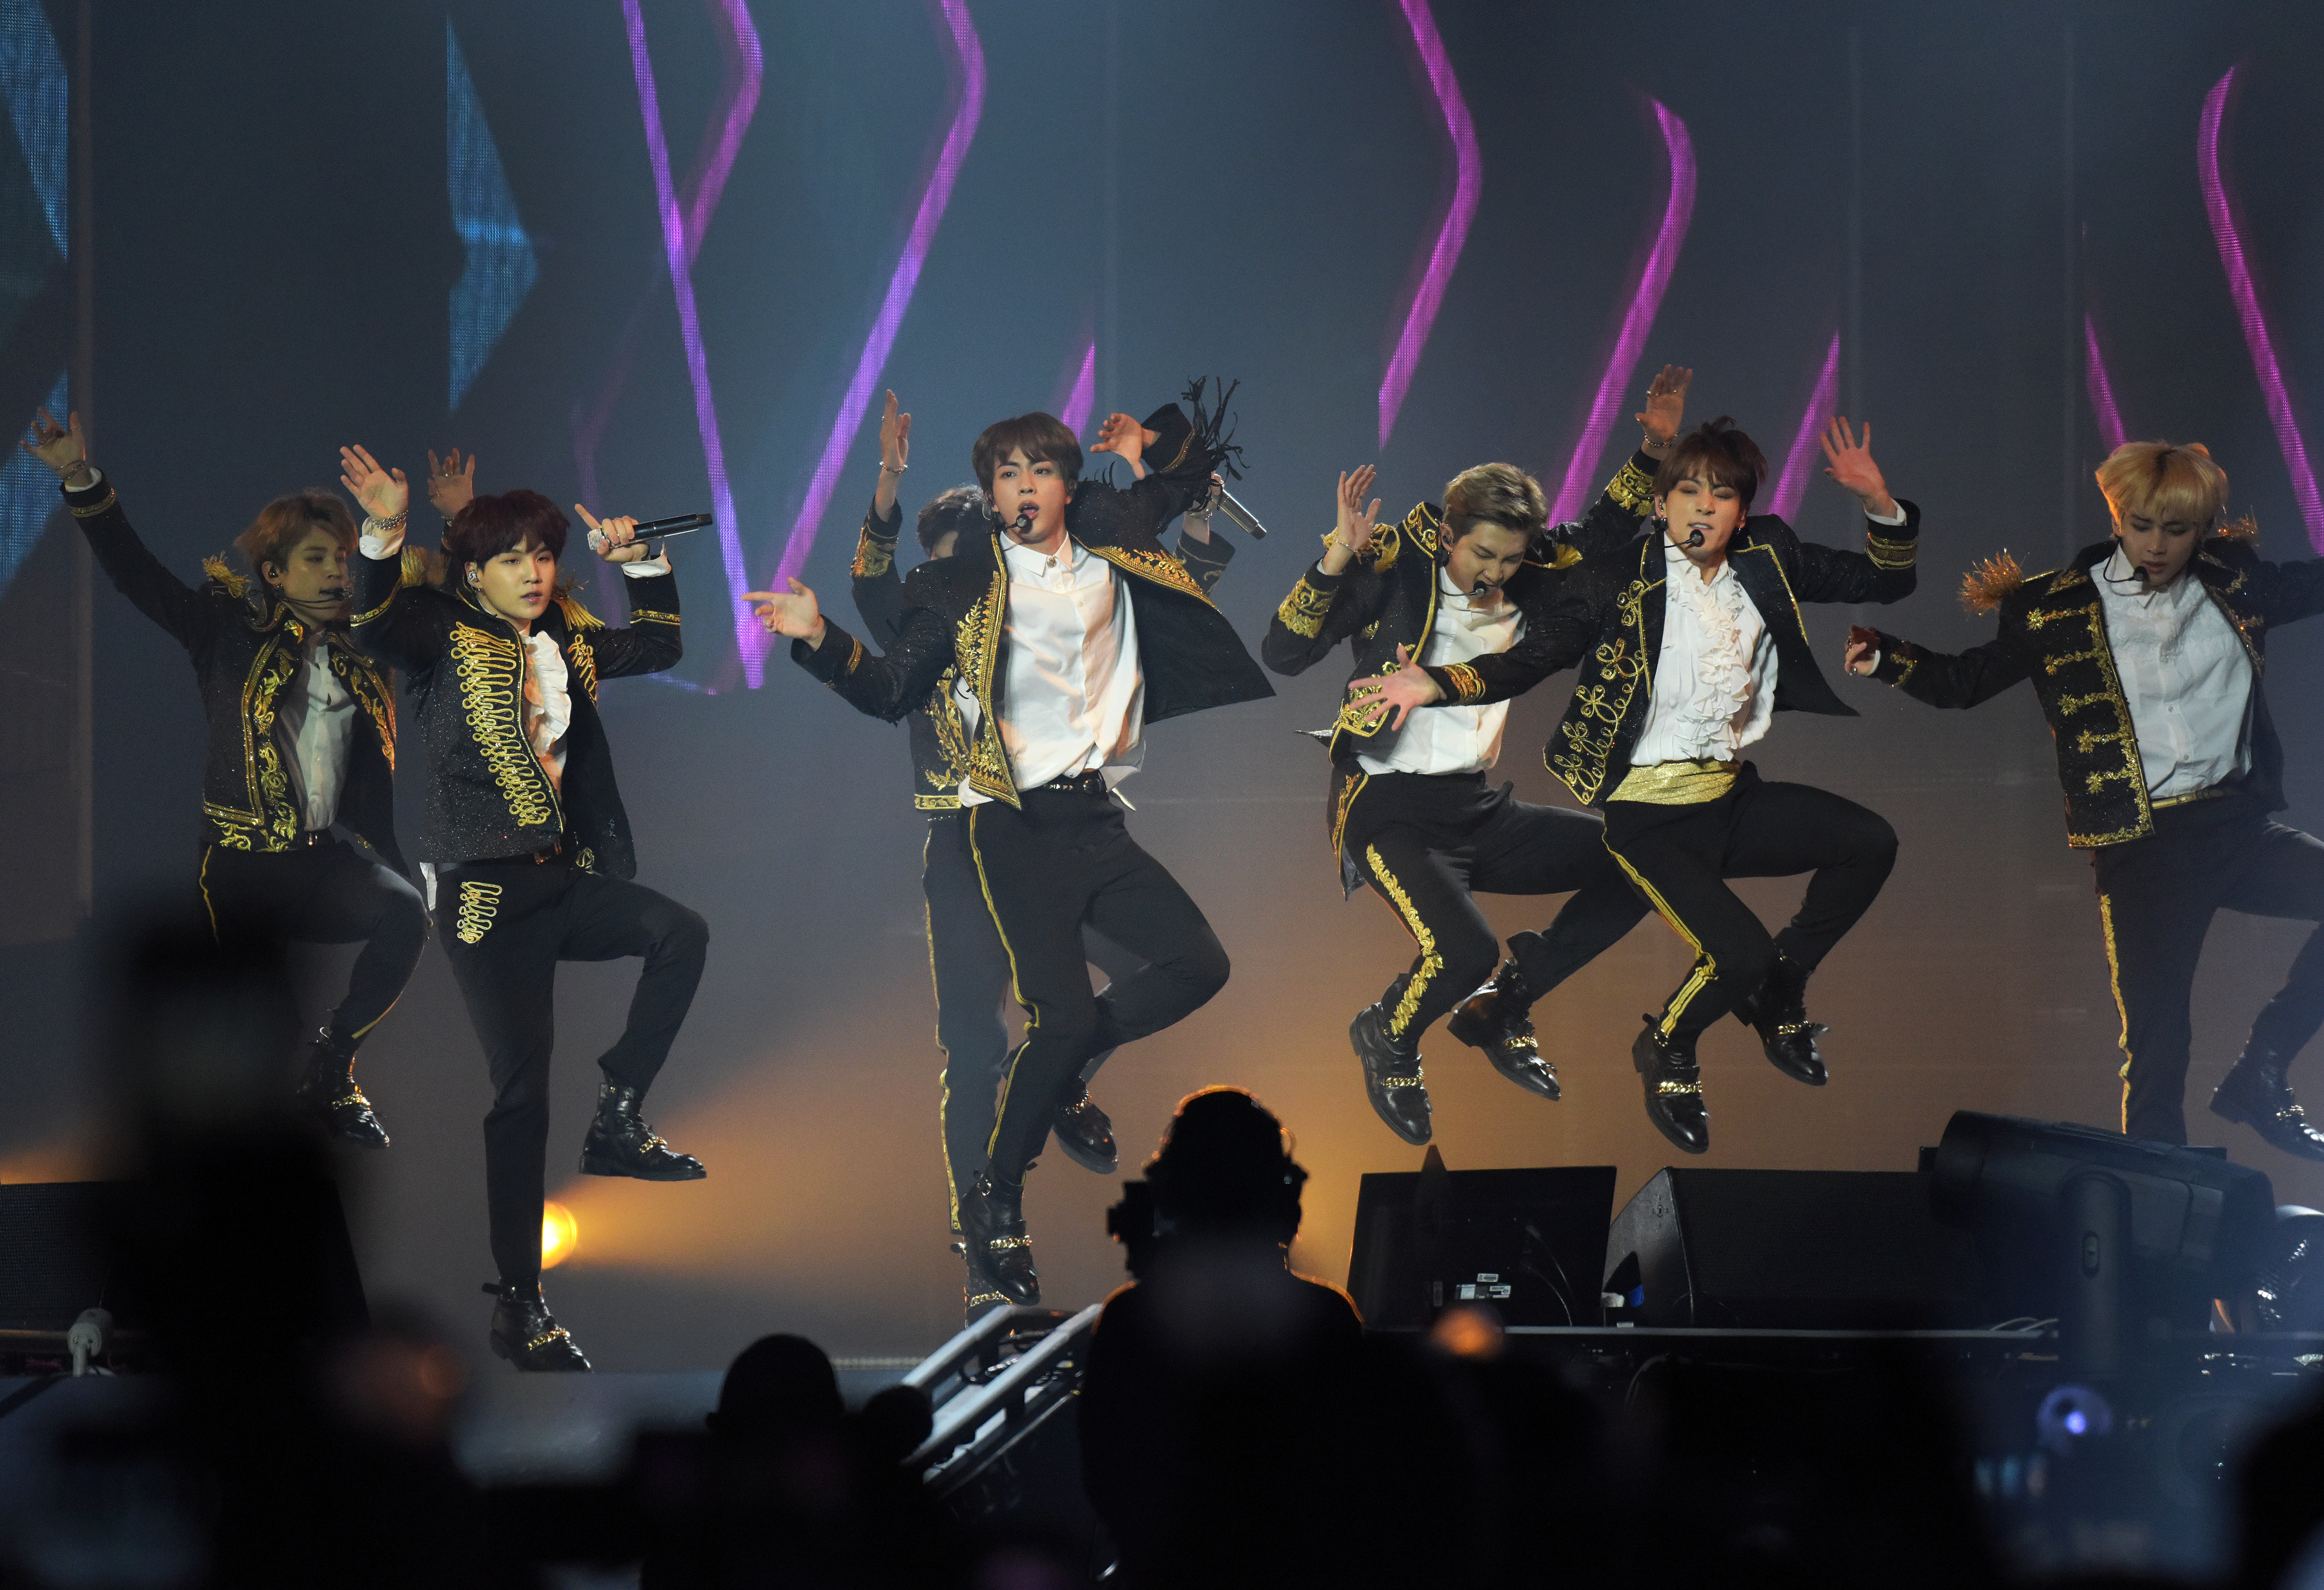 BTS at MetLife Stadium: Everything you need to know, transit info, parking, bag policy